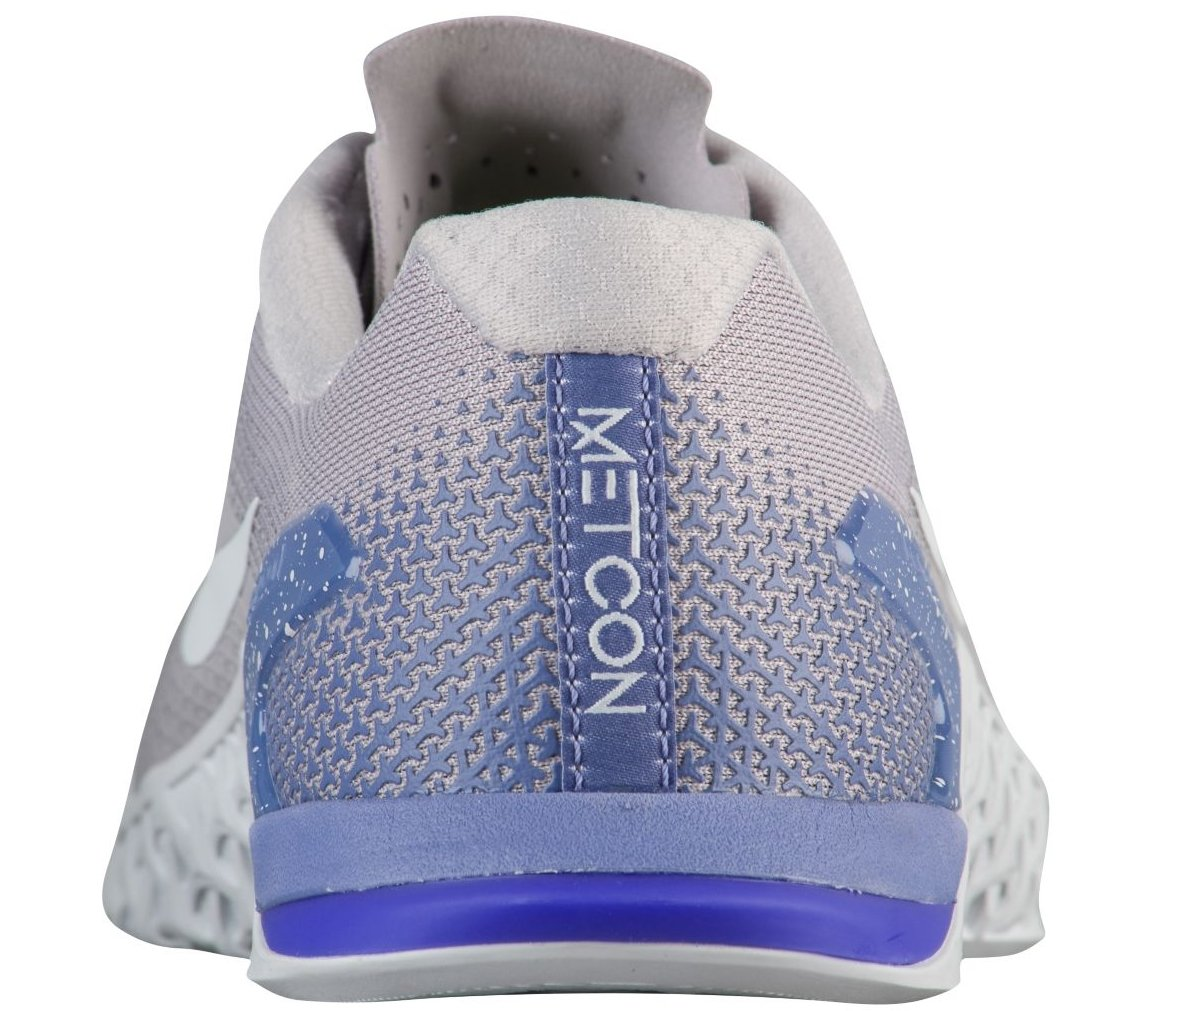 NIKE Women Metcon 4 Training Shoe Grey B0761YMPHM 5.5 B(M) US|Atmosphere Grey/Pure Platinum